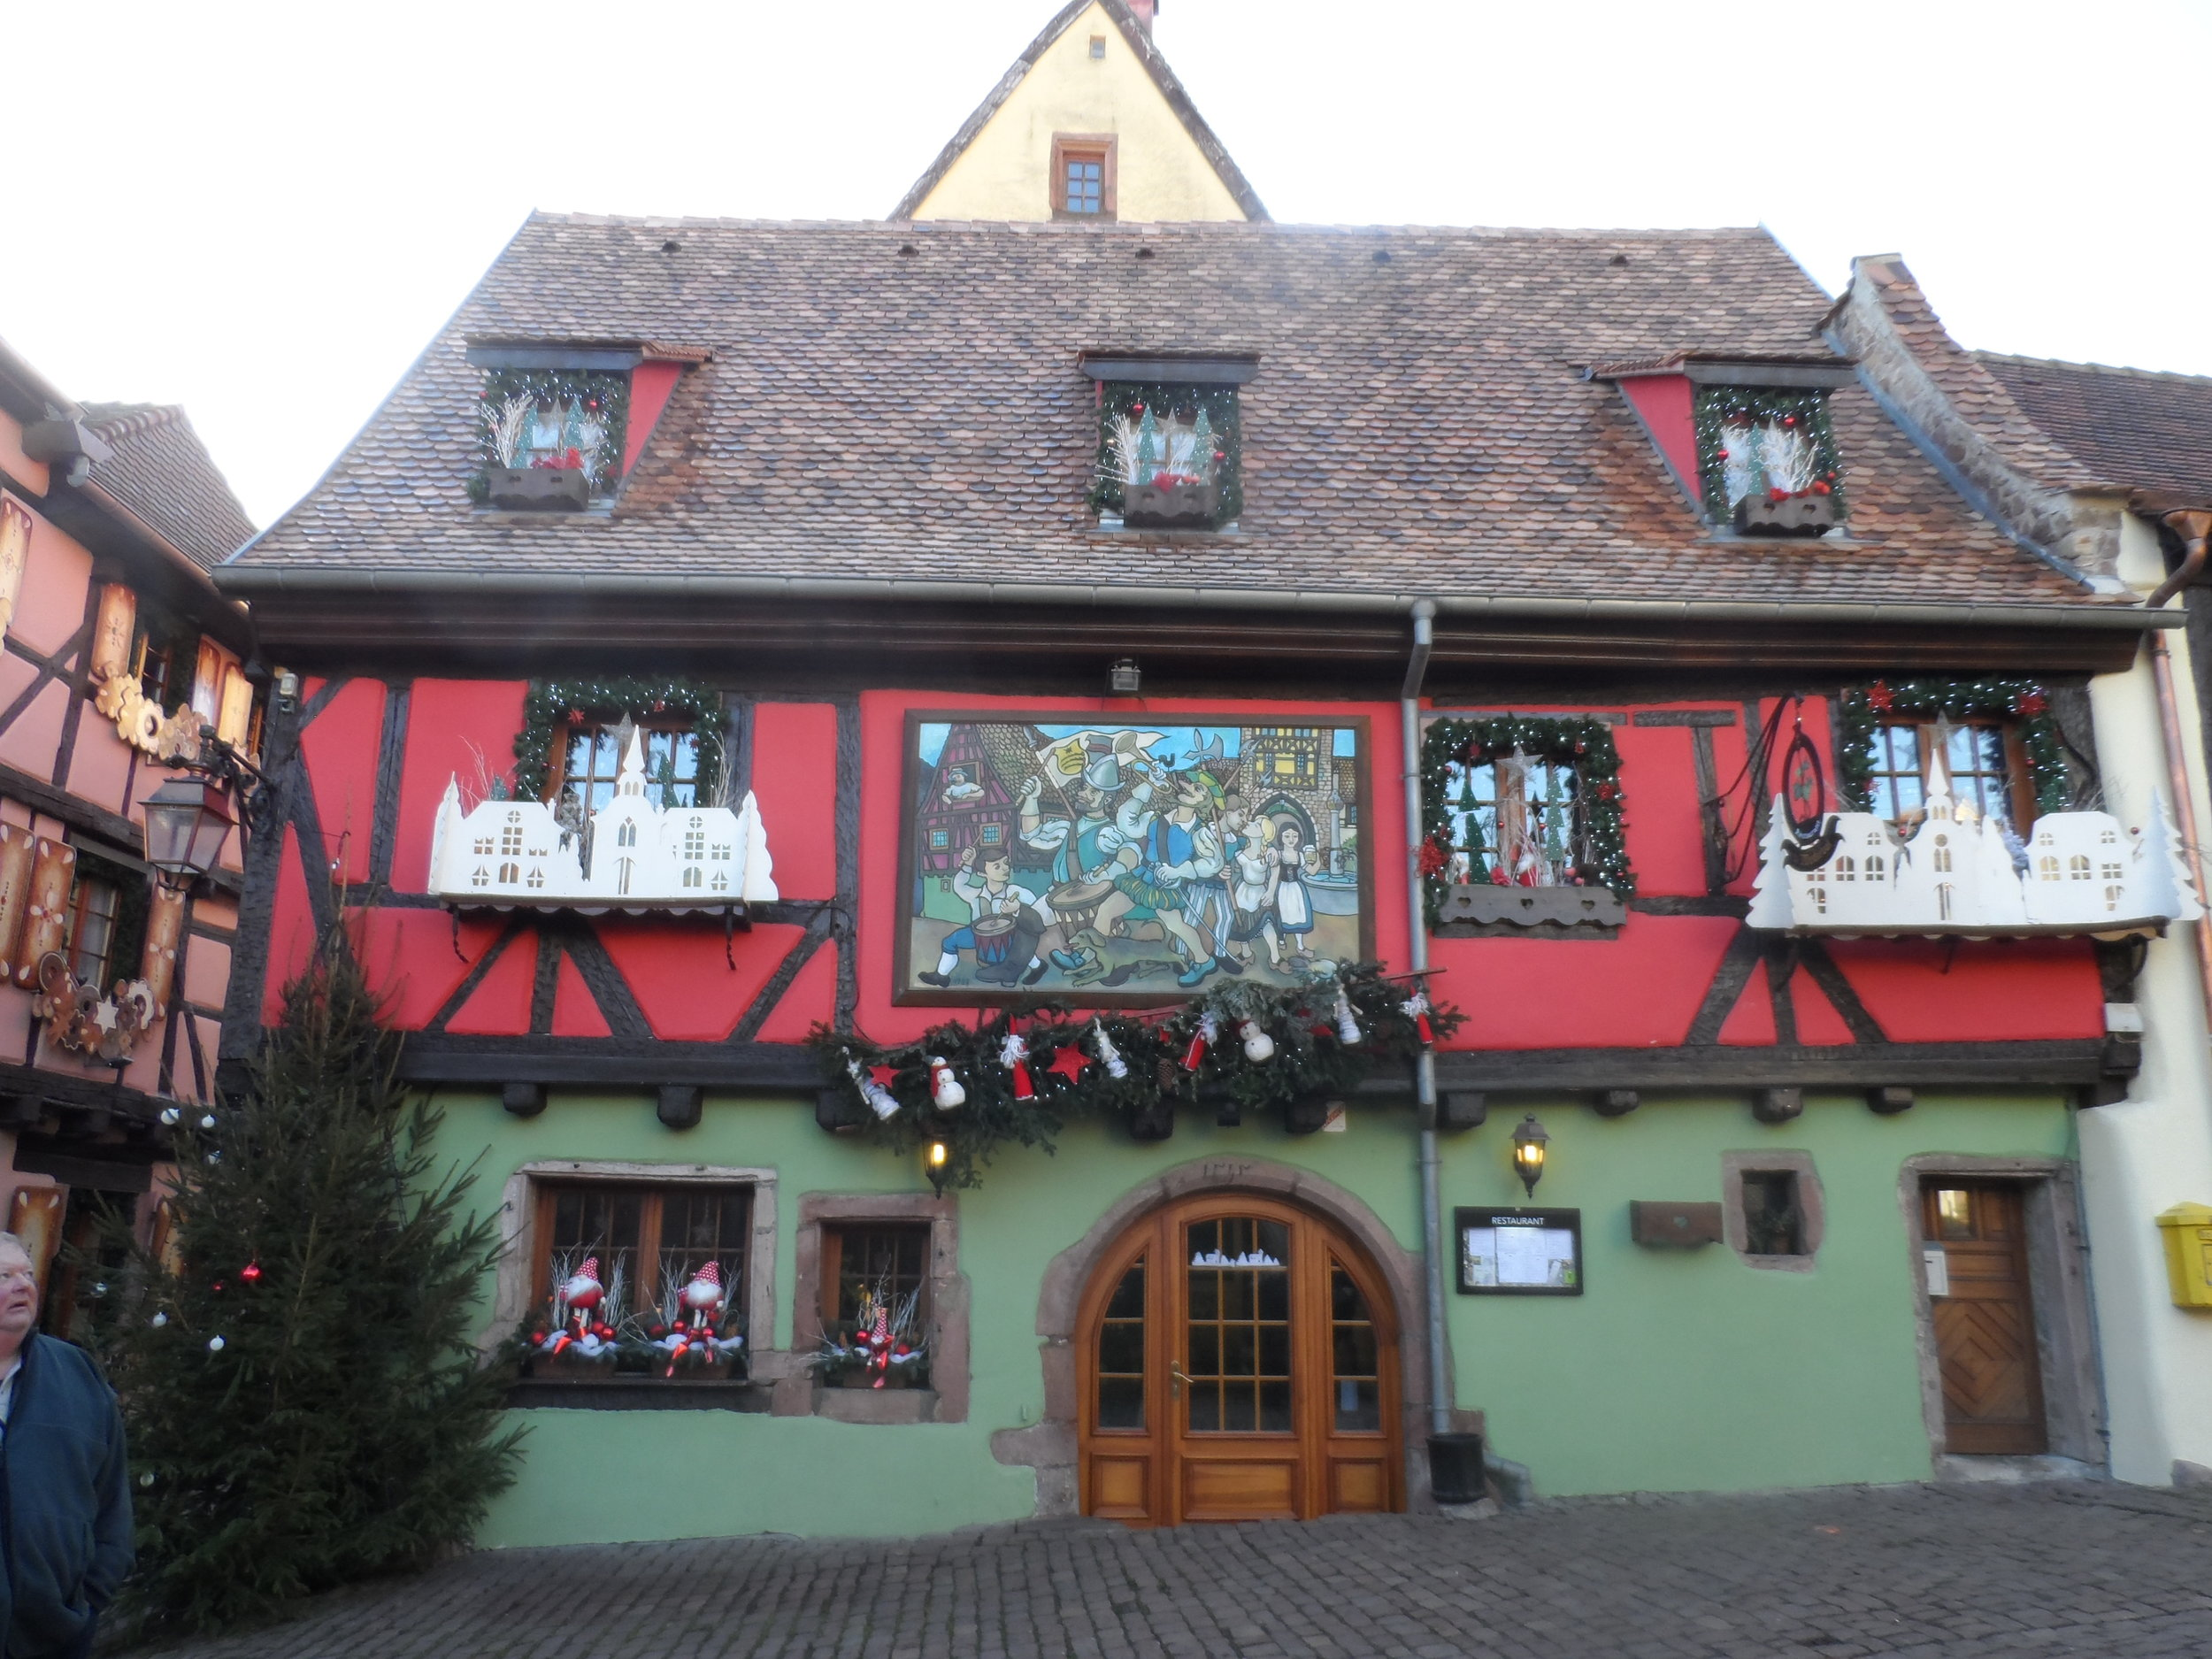 The Alsace French town of Riquewihr decorated for Christmas